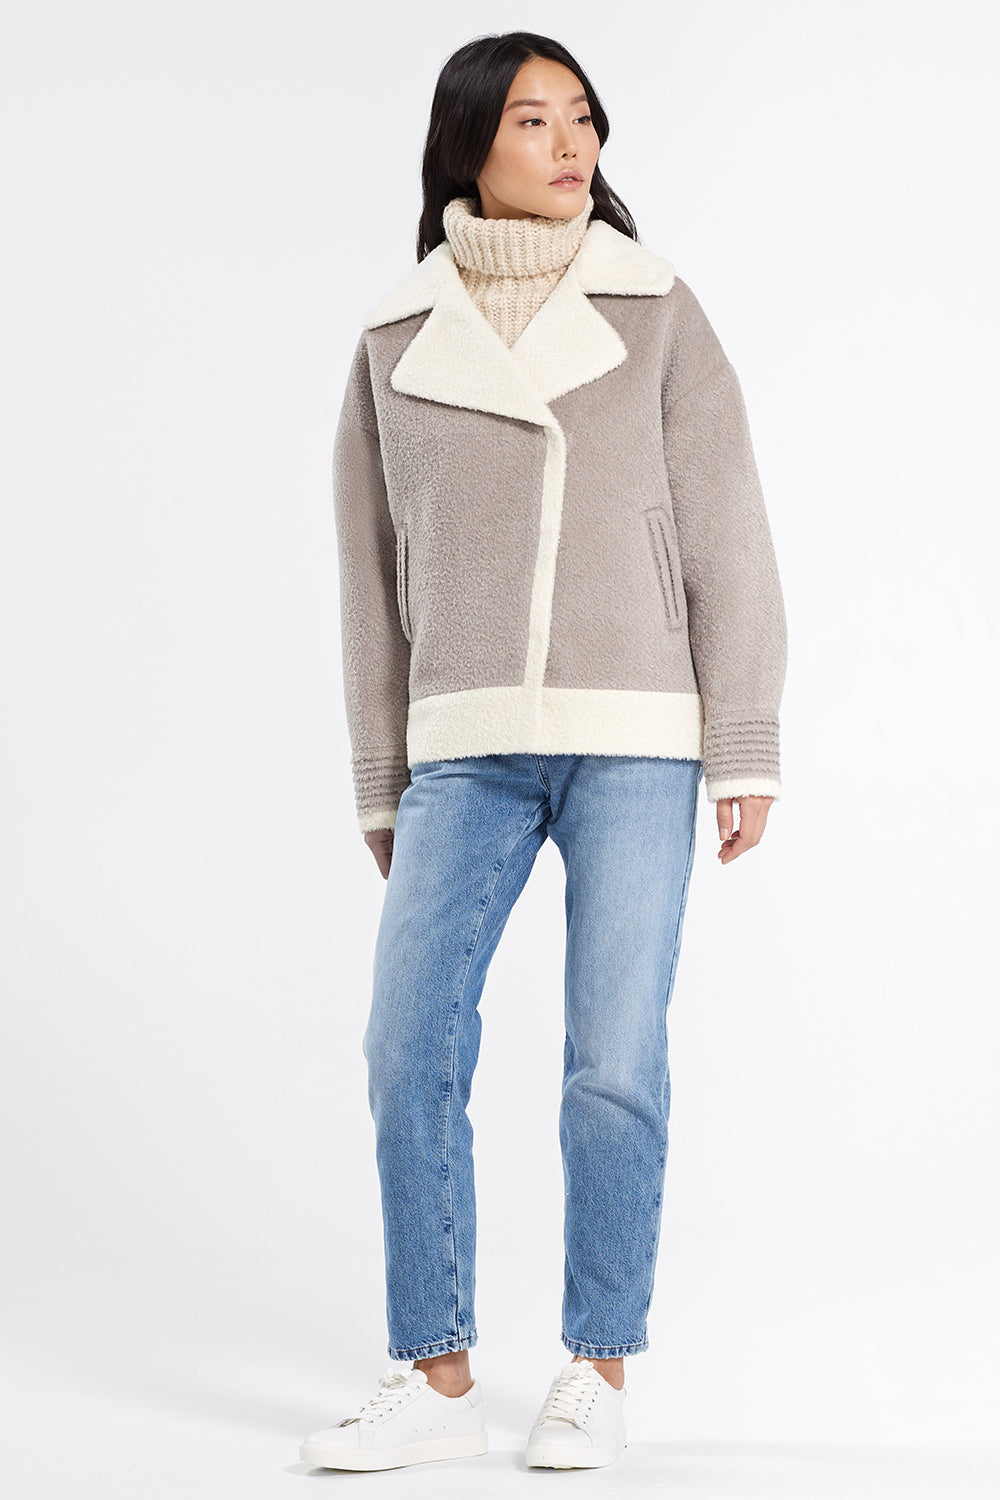 Sentaler Bouclé Alpaca Dropped Shoulder Boyfriend Jacket featured in Bouclé Alpaca and available in Sand. Seen from front.